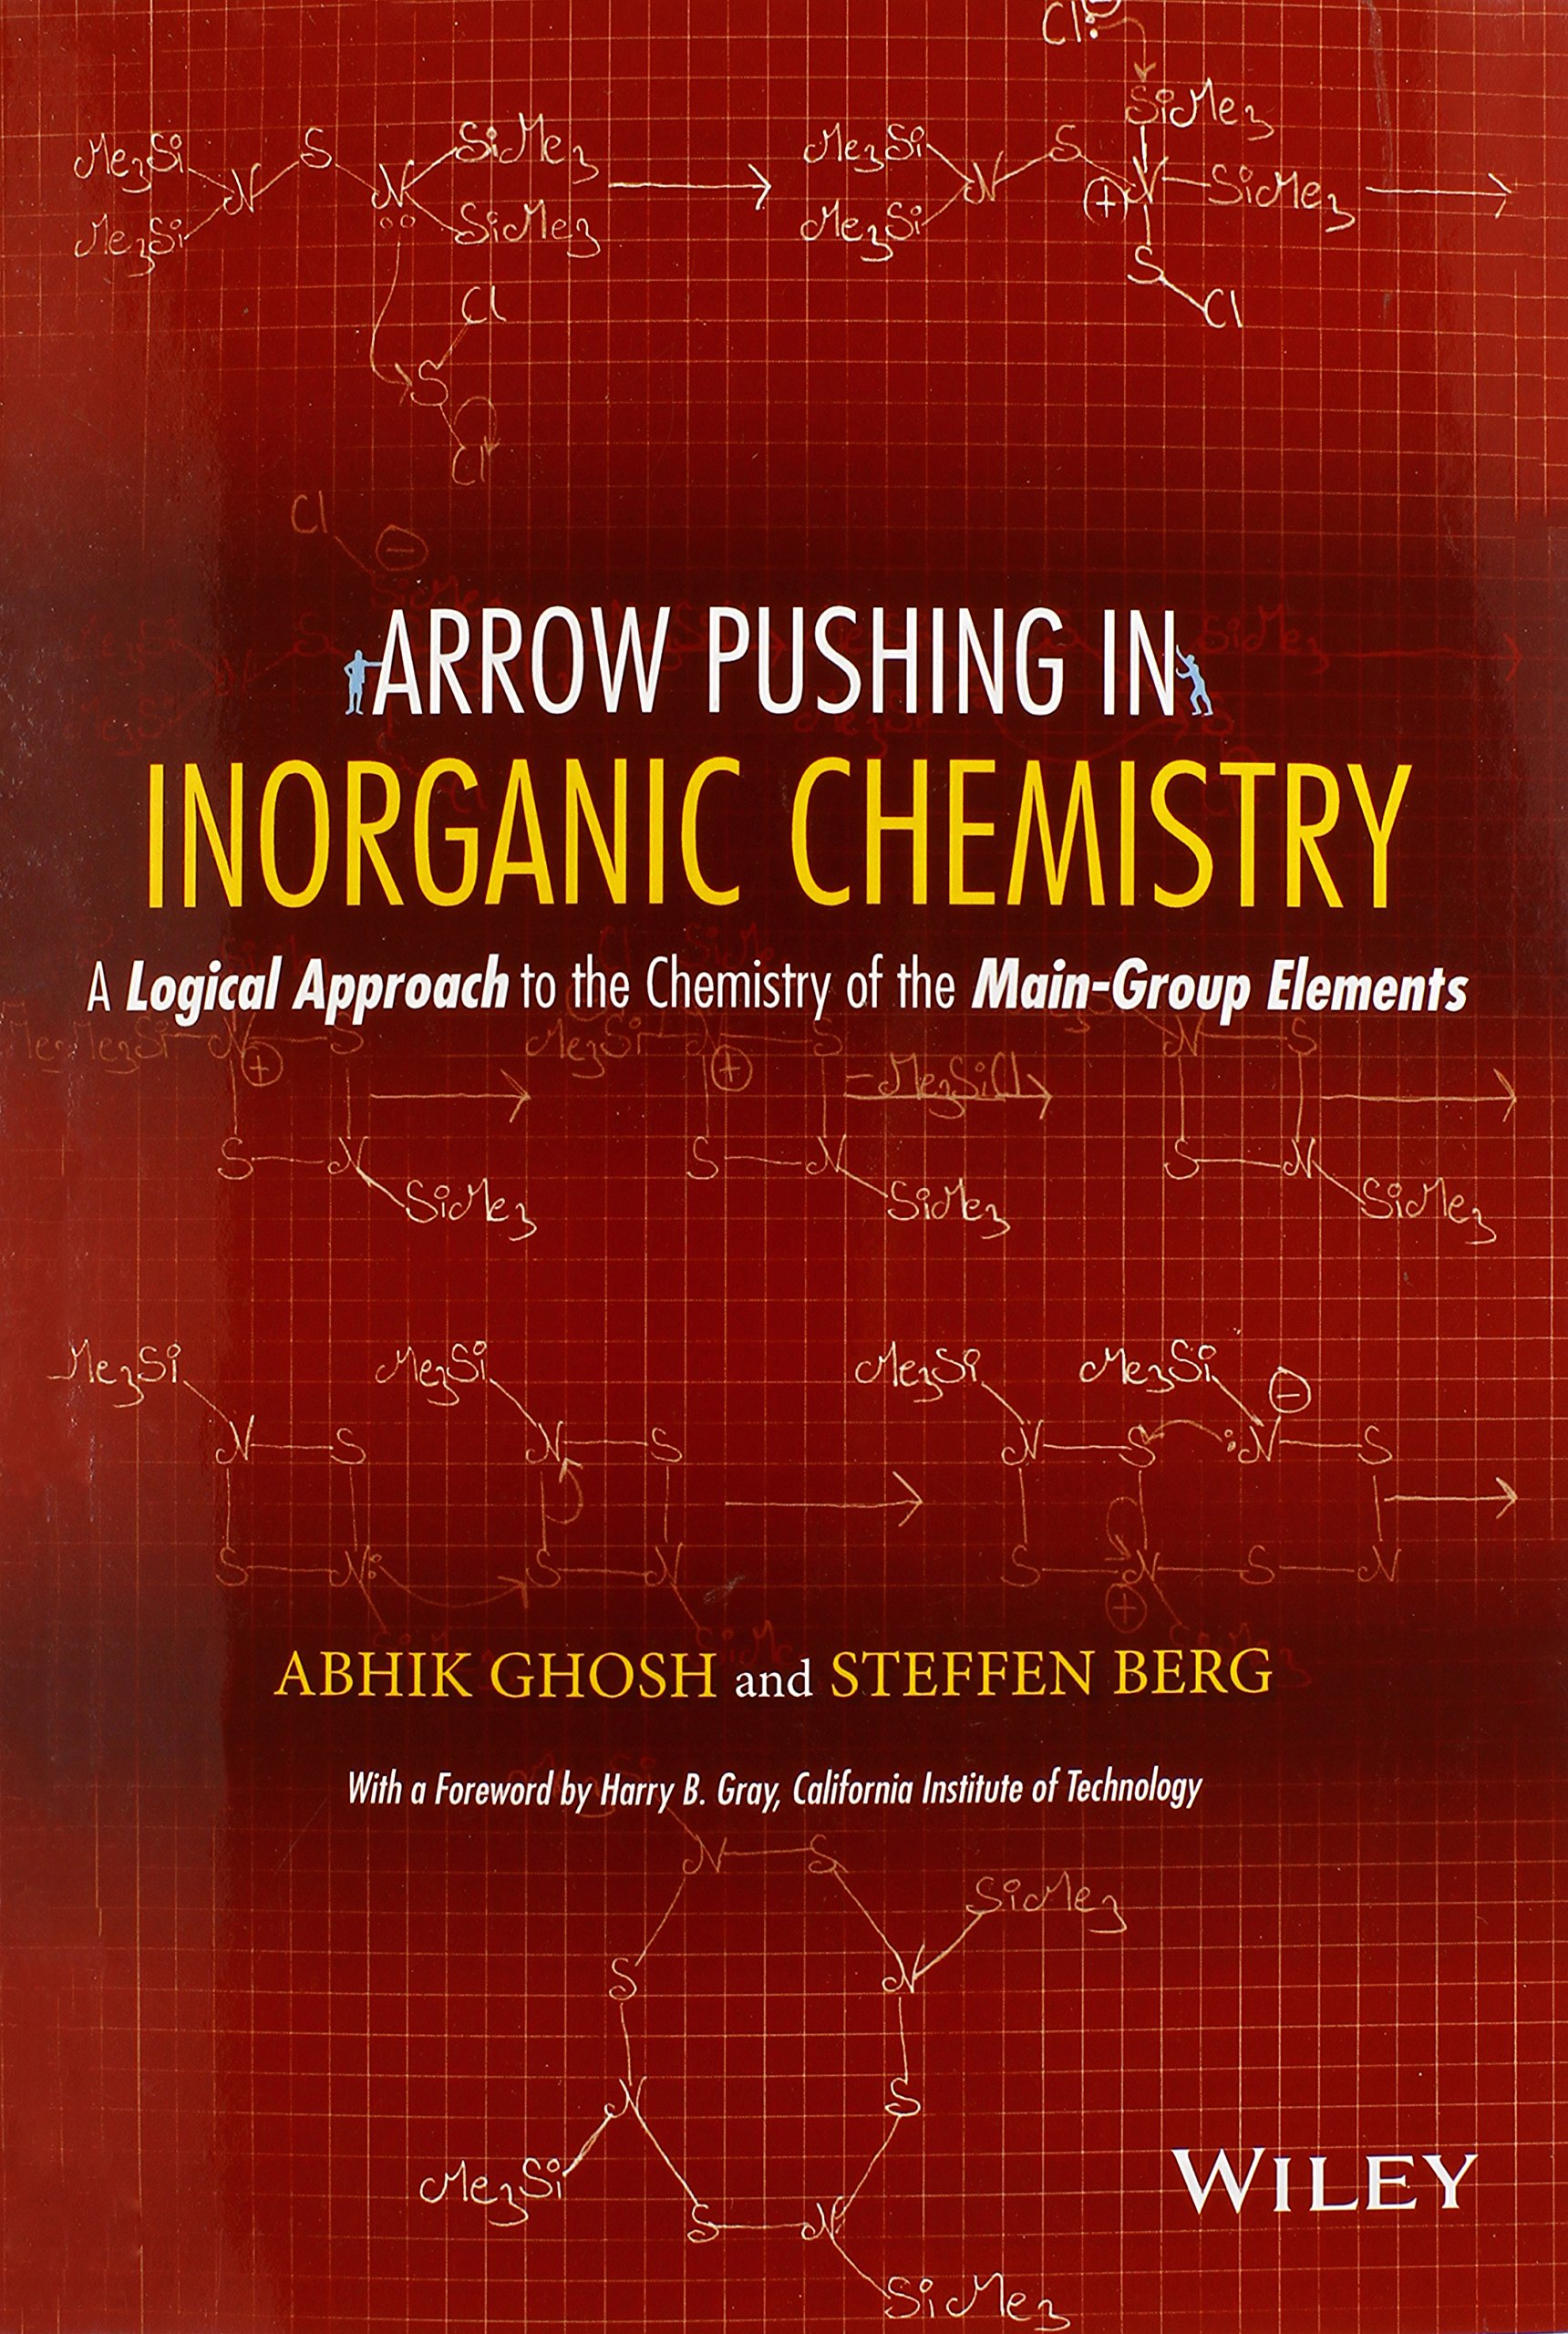 arrow pushing in inorganic chemistry a logical approach to the arrow pushing in inorganic chemistry a logical approach to the chemistry of the main group elements abhik ghosh steffen berg 9781118173985 books